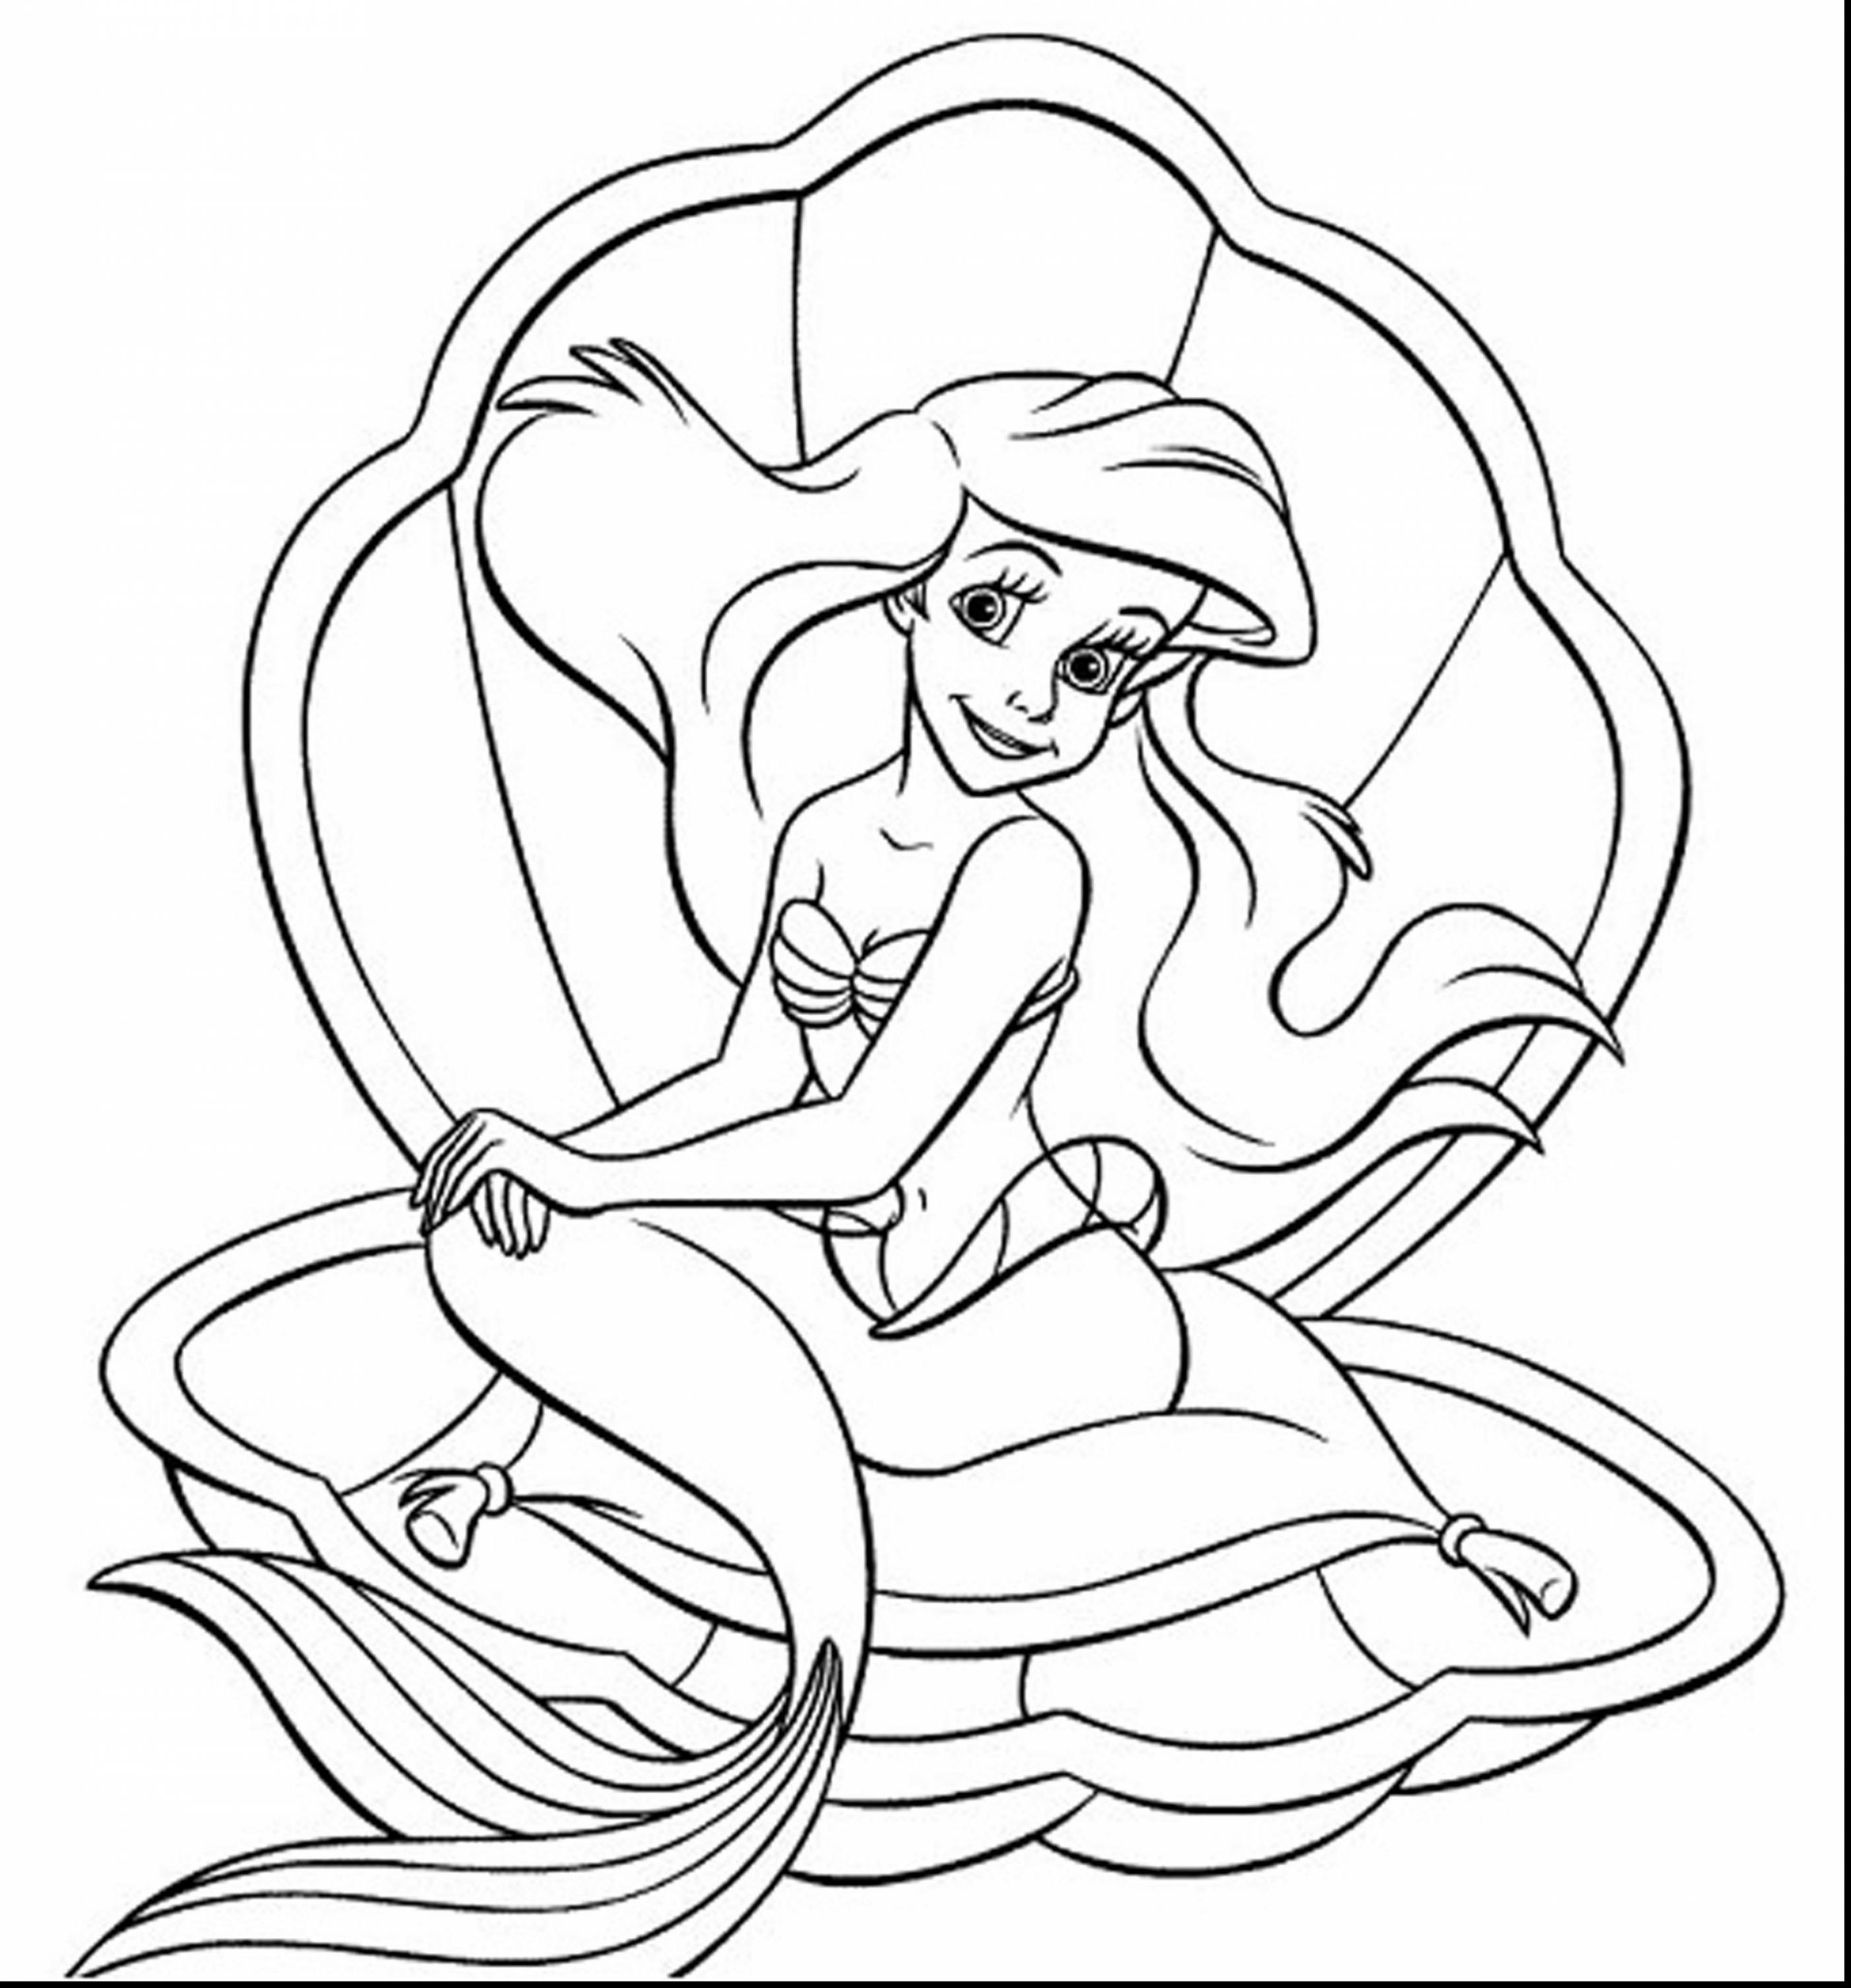 ariel colour in the little mermaid coloring pages 3 disneyclipscom ariel colour in